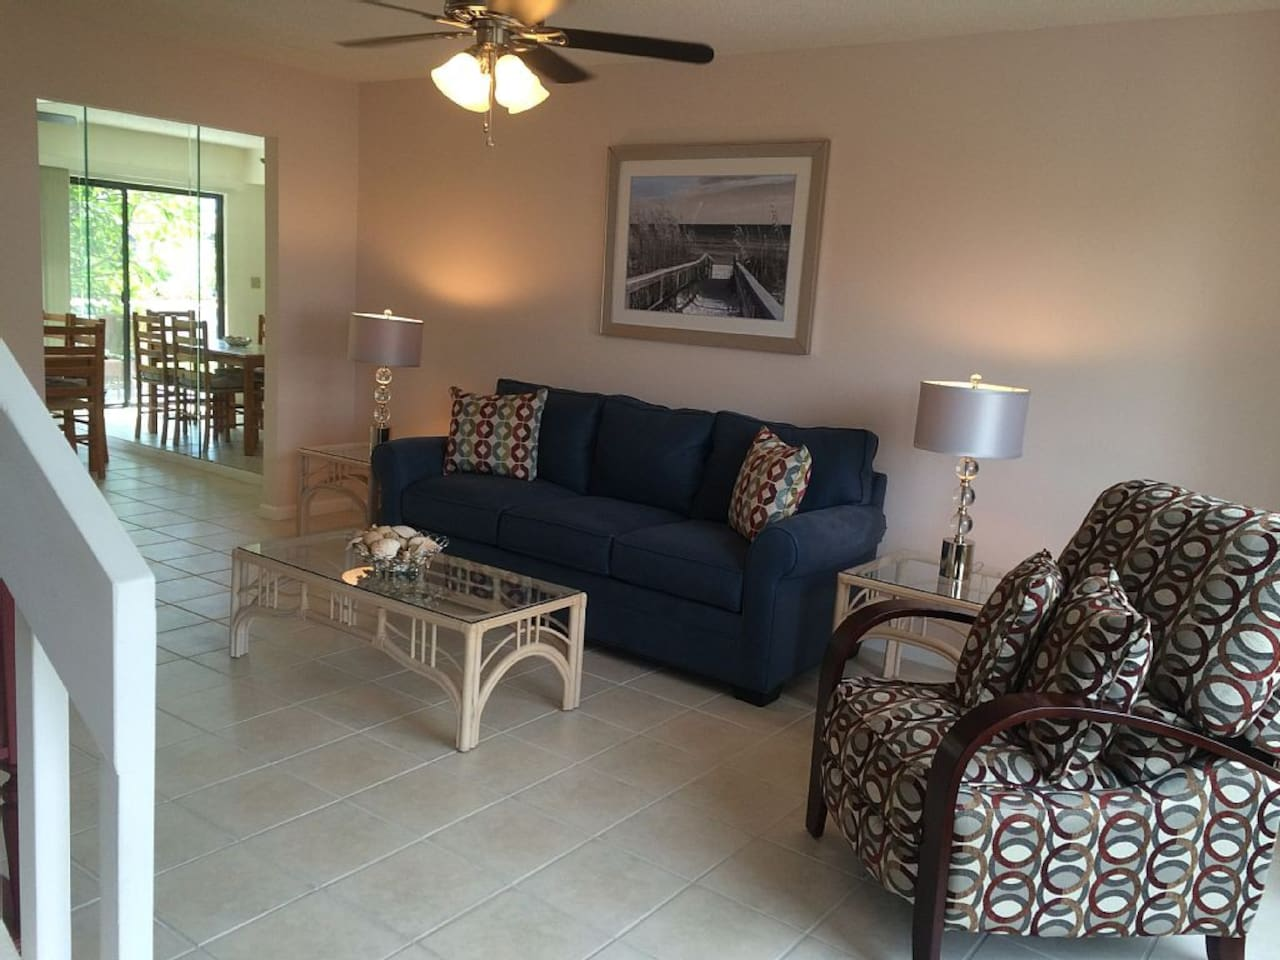 Large, Beautifully decorated Living area, Sofa Bed, Recliner Chair, extra seating